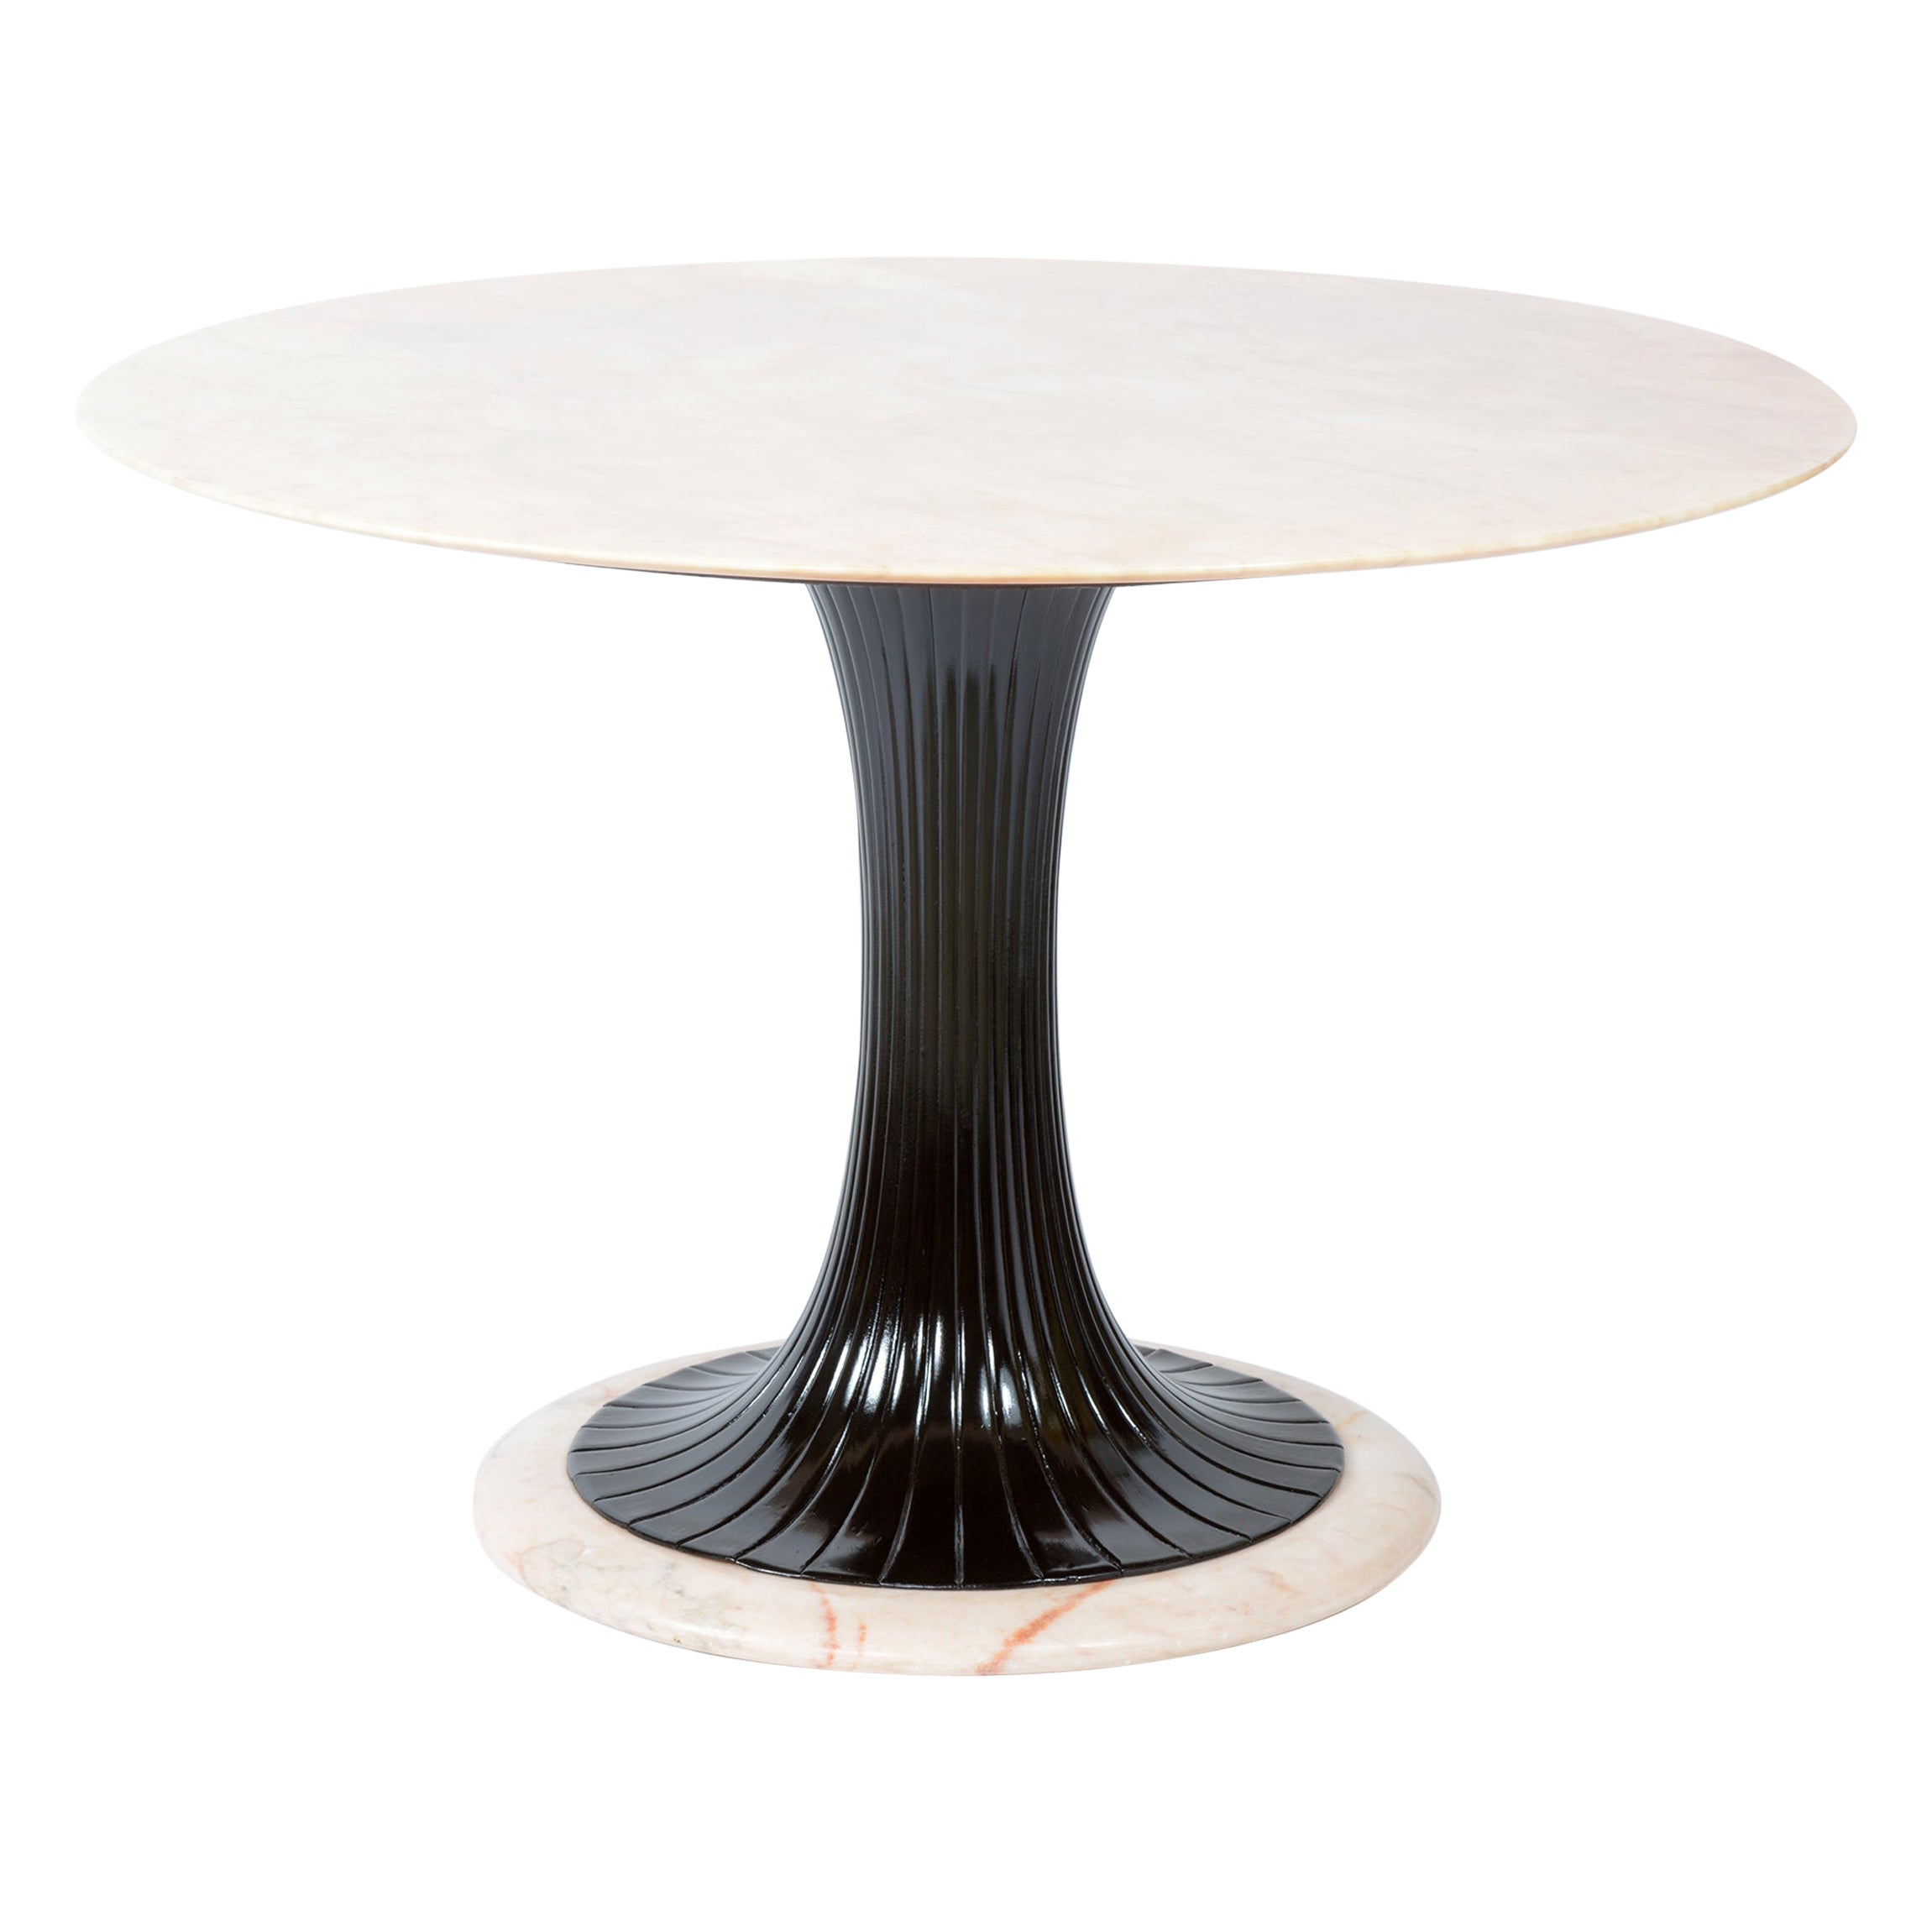 Dassi Lissone Milano Italy Midcentury Round Marble Top Table